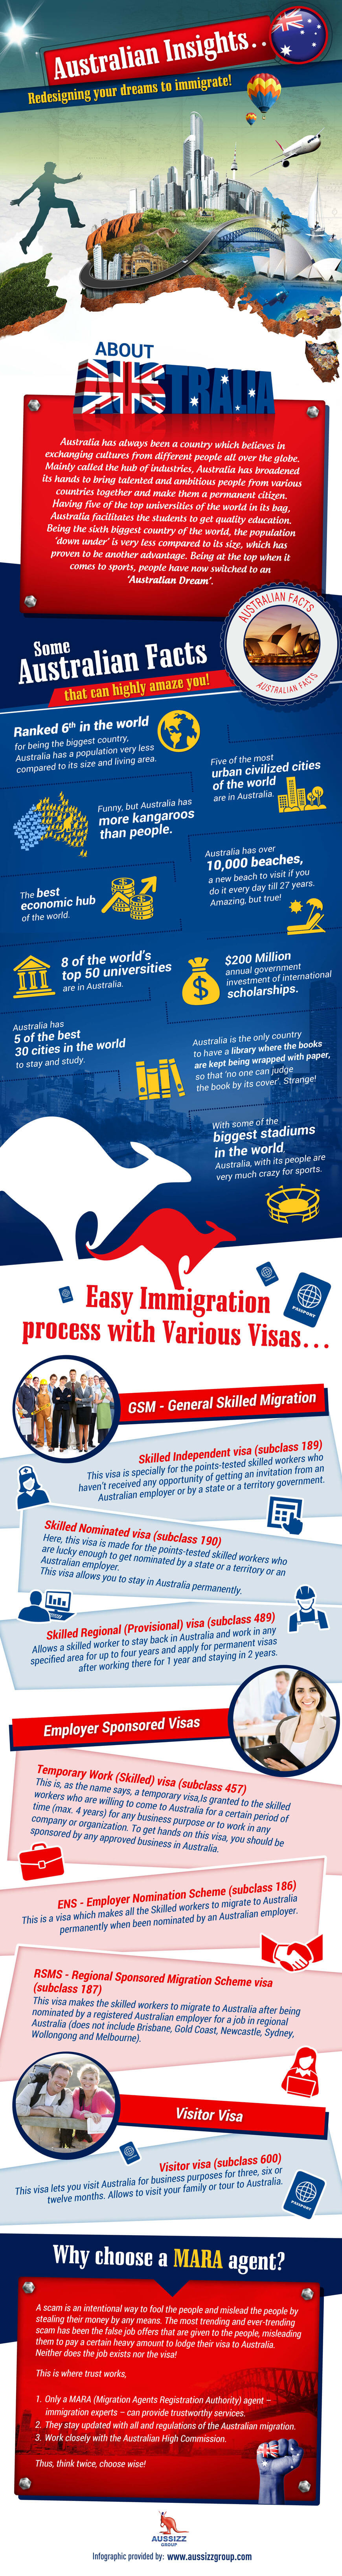 redesign your dreams to Immigrate